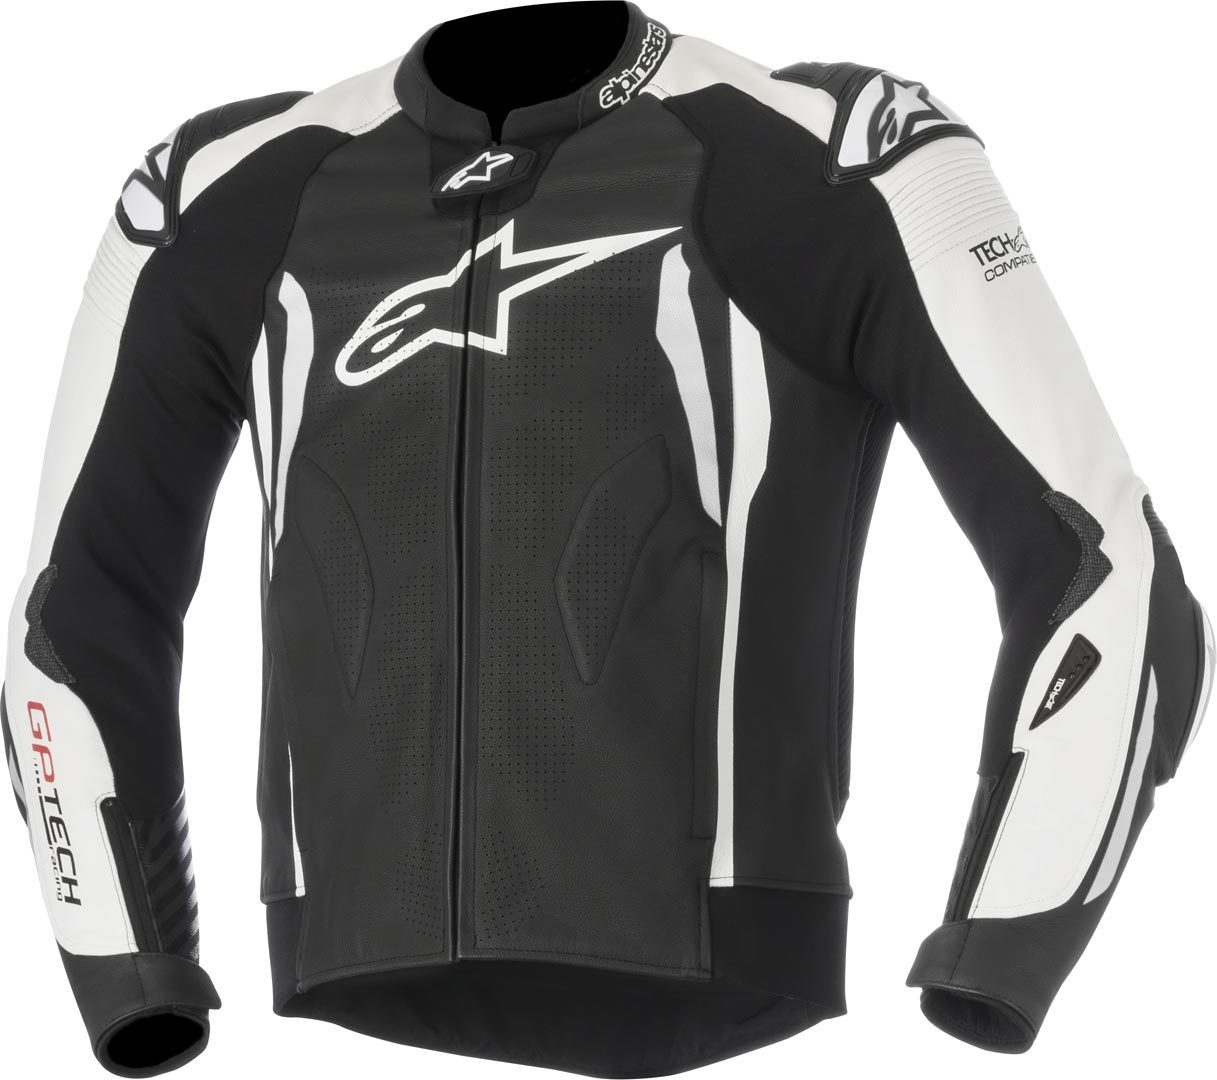 alpinestars GP TECH V2 LEATHER JACKET TECH-AIR COMPATIBLE